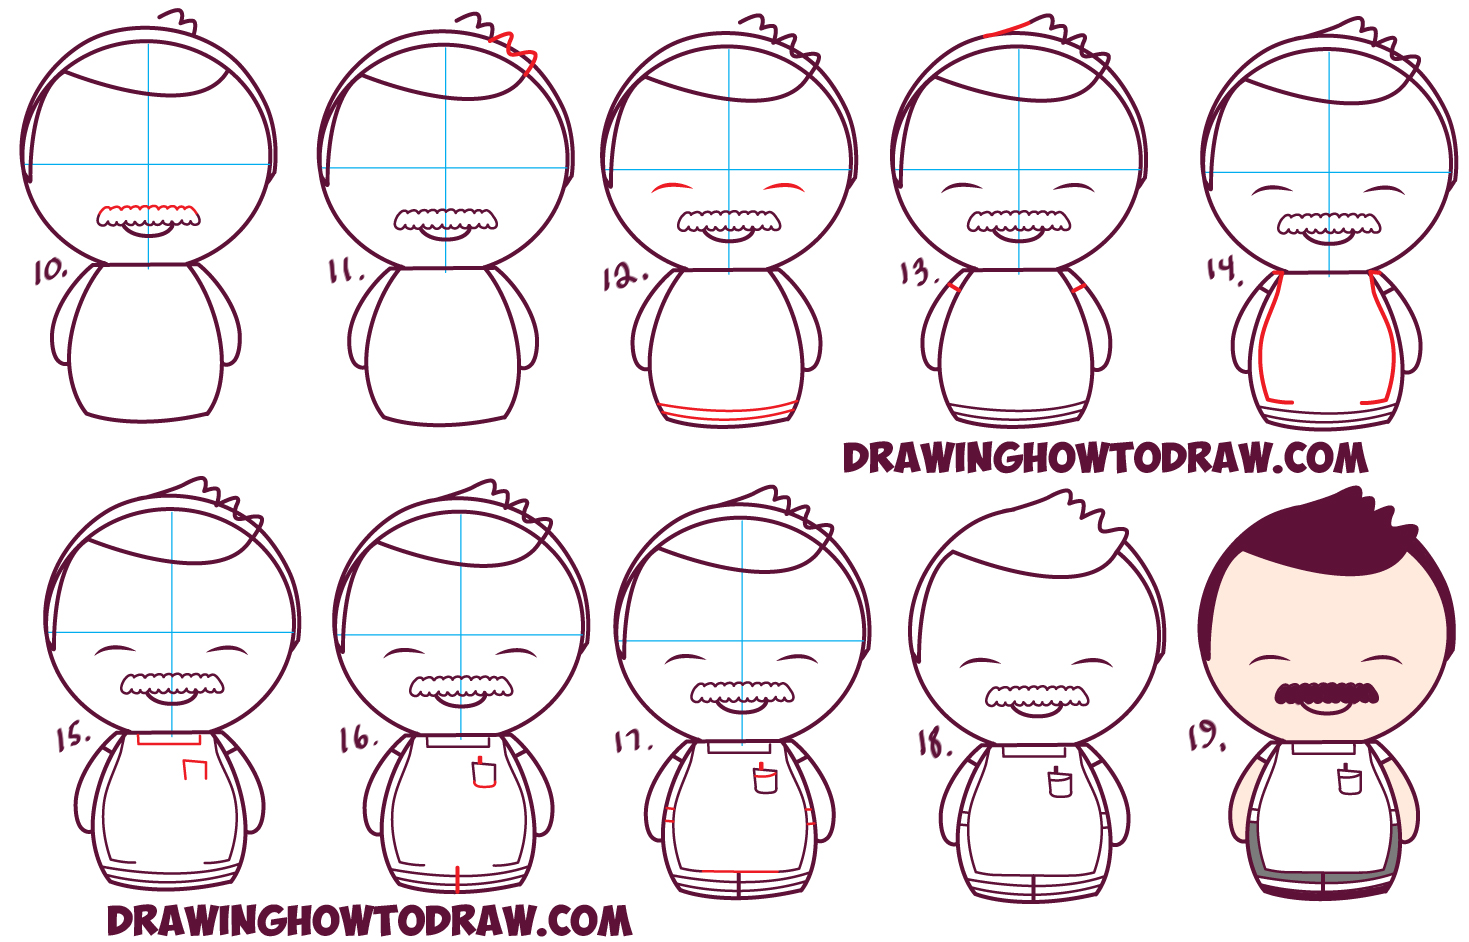 Learn How to Draw Kawaii Chibi Bob (Dad) from Bob's Burgers in Simple Step by Step Drawing Tutorial